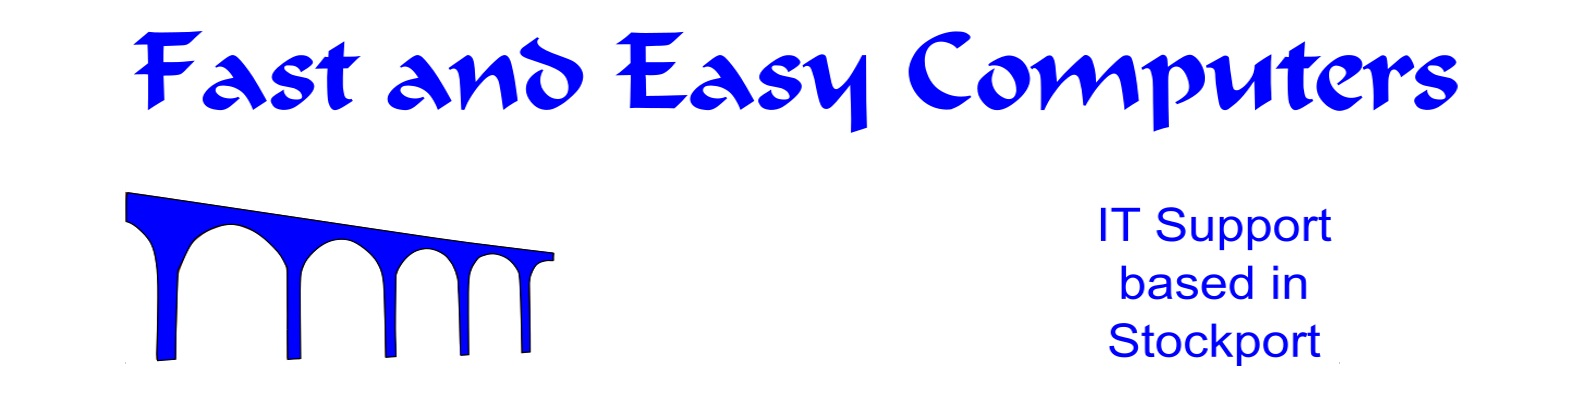 Fast and Easy Computers